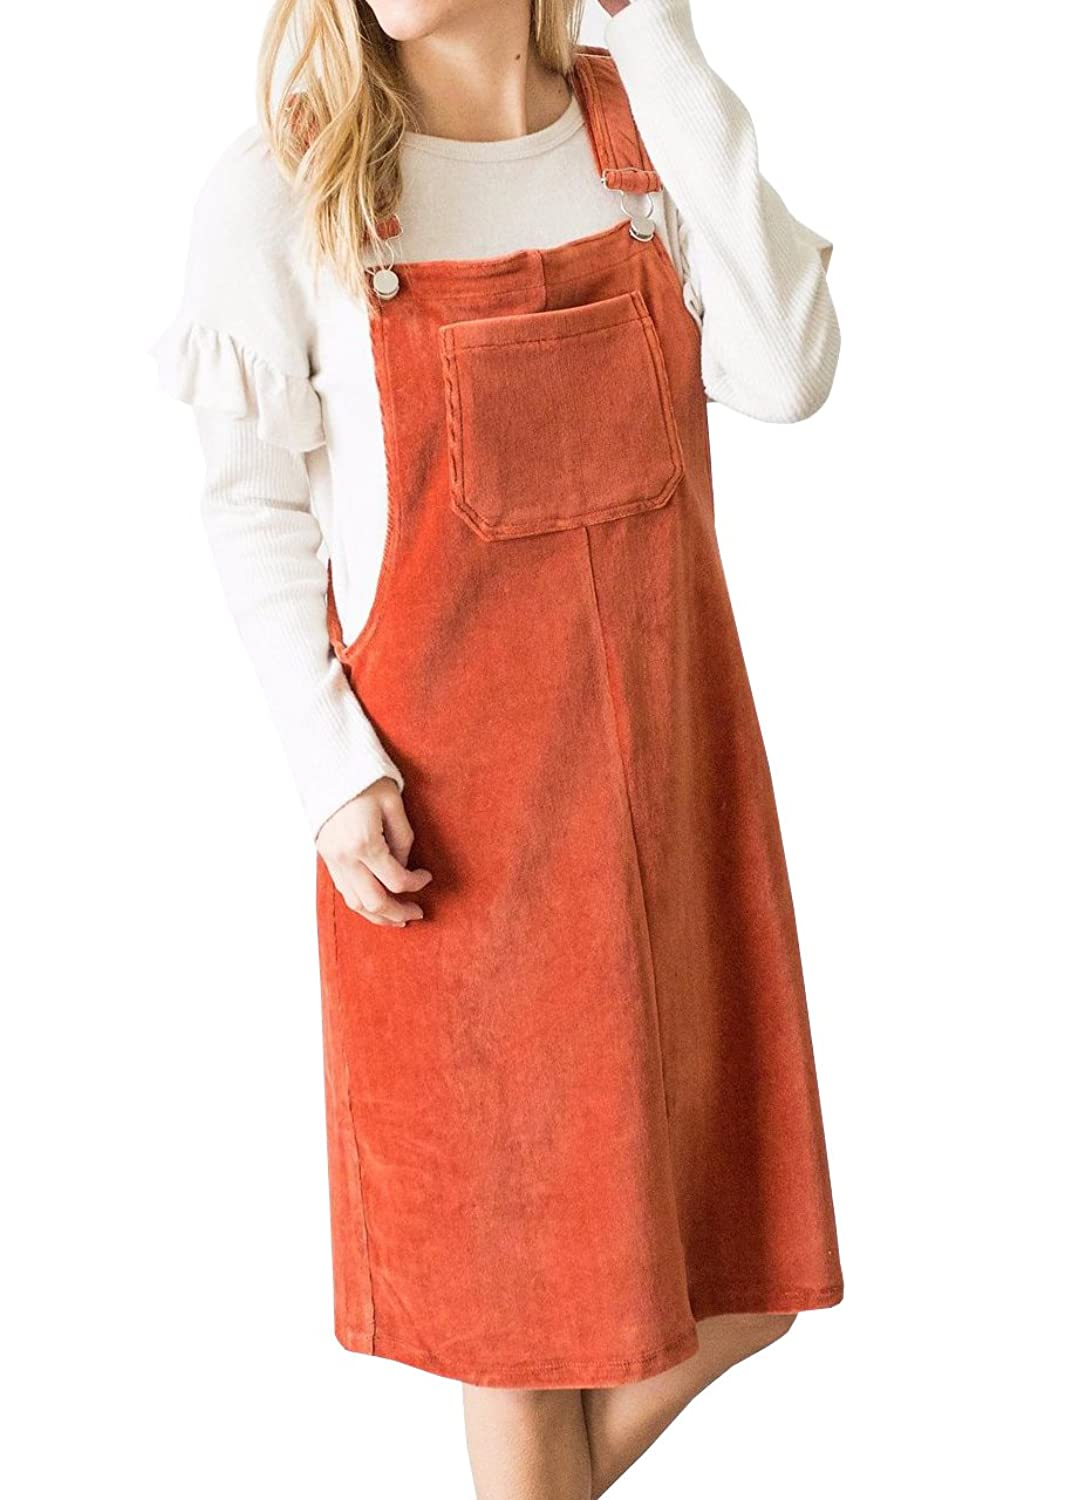 342c46c36f High Quility and Comfortable. ❉Women\'s Corduroy Bib, Solid Suspender Skirt,  Adjustable Strap Overall Pinafore Dress, Cute Pinafore Dress Have A Big  Pocket ...